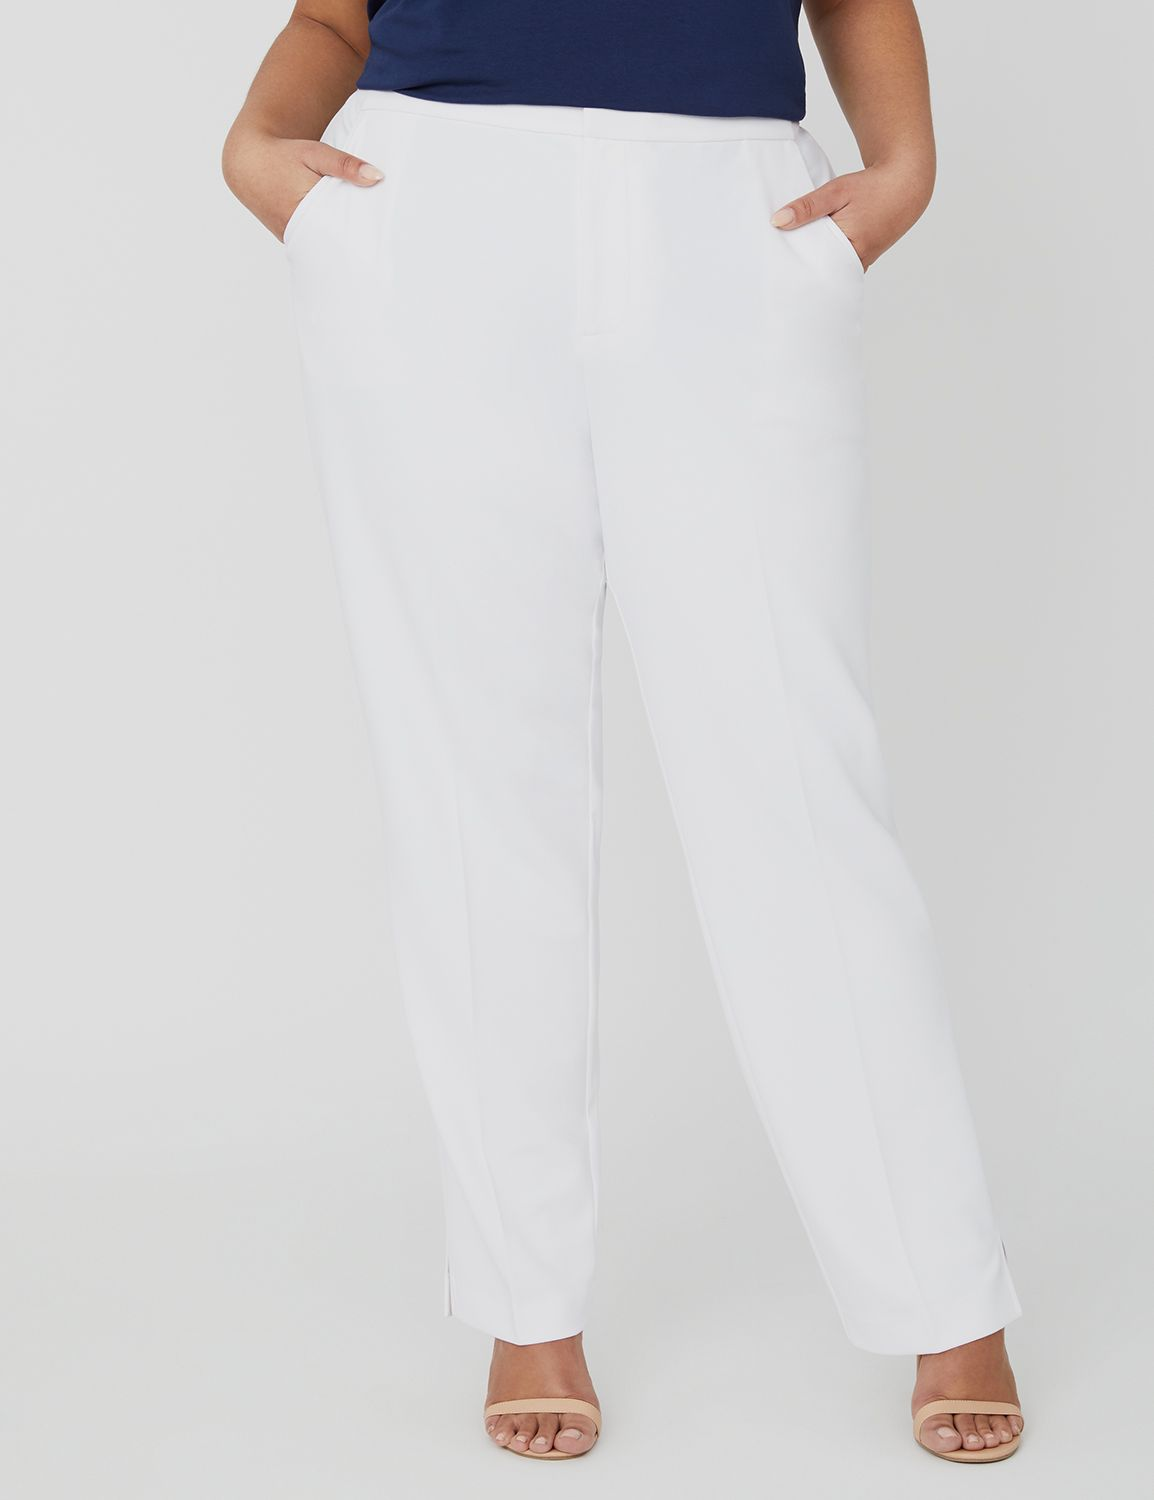 Black Label Soft Crepe Pant 1088525 Soft Crepe Pant with Elasti MP-300098650